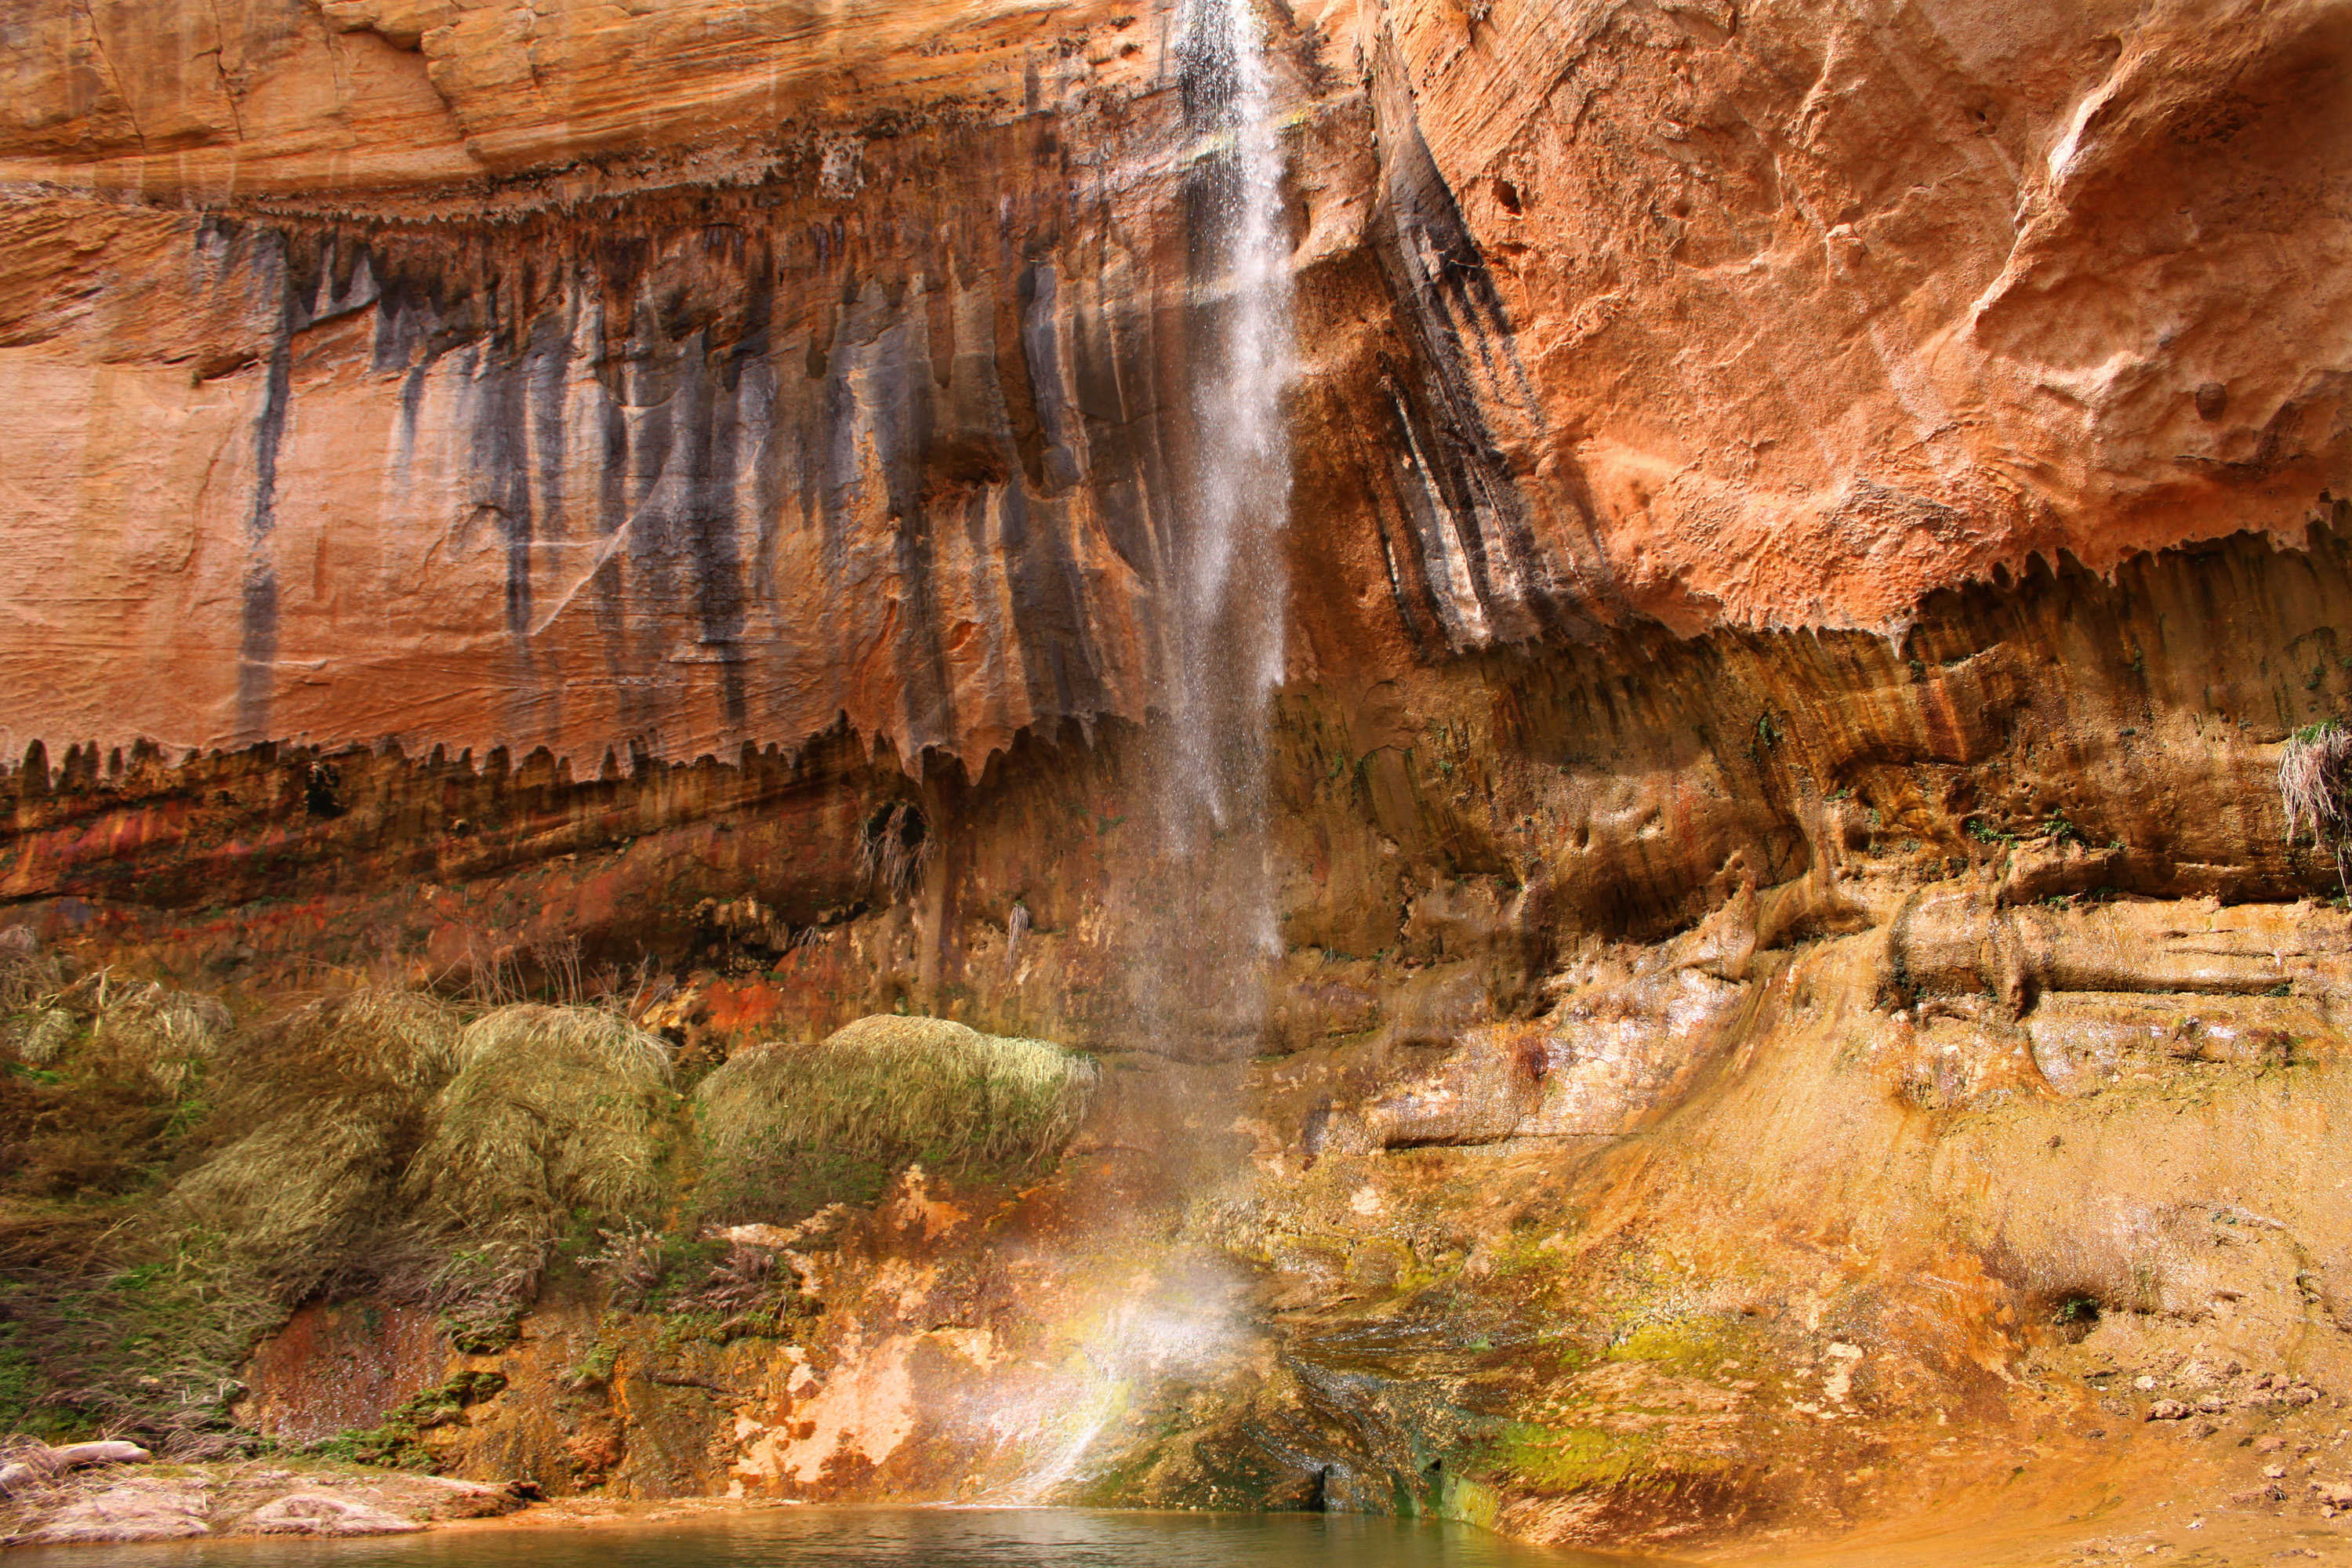 6481Upper-Calf-Creek-Falls